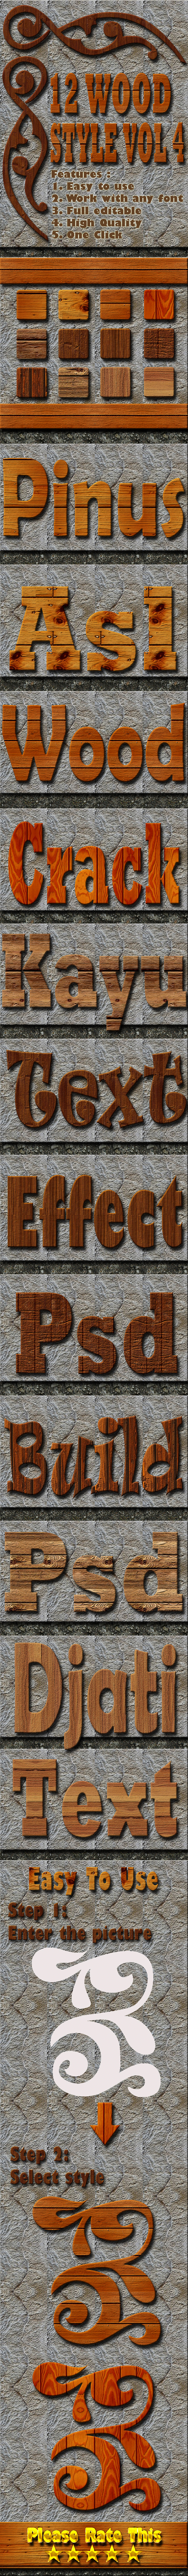 12 Wood Text Effect Style Vol 4